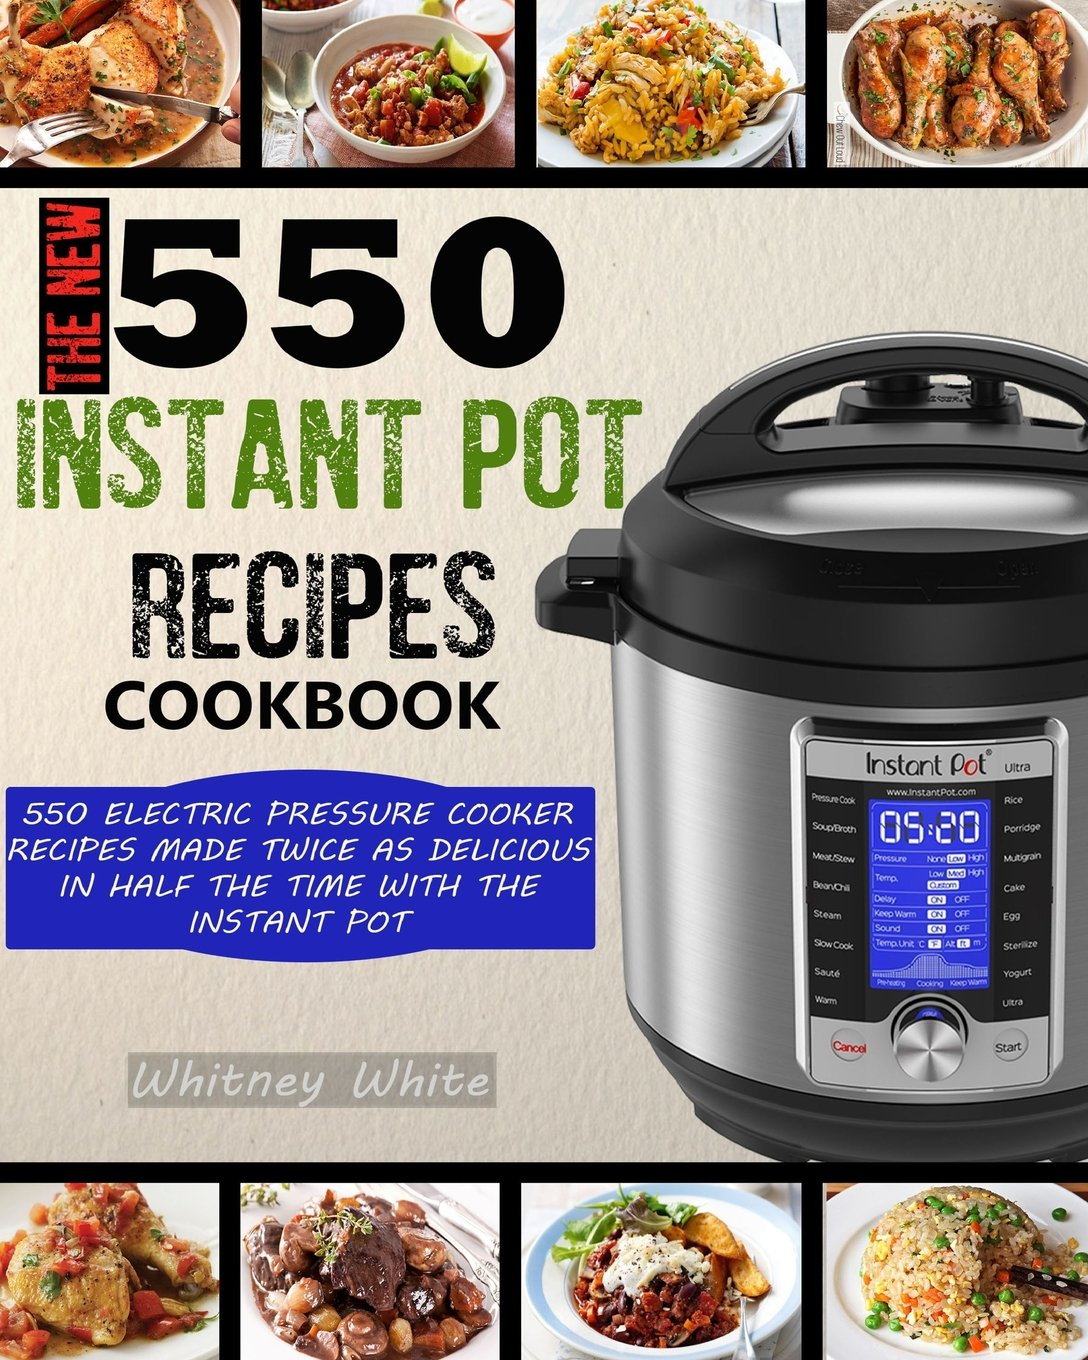 Read Online The New 550 Instant Pot Recipes Cookbook: 550 Electric Pressure Cooker Recipes Made Twice As Delicious In Half The Time With The Instant Pot (Instant Pot Cookbook) pdf